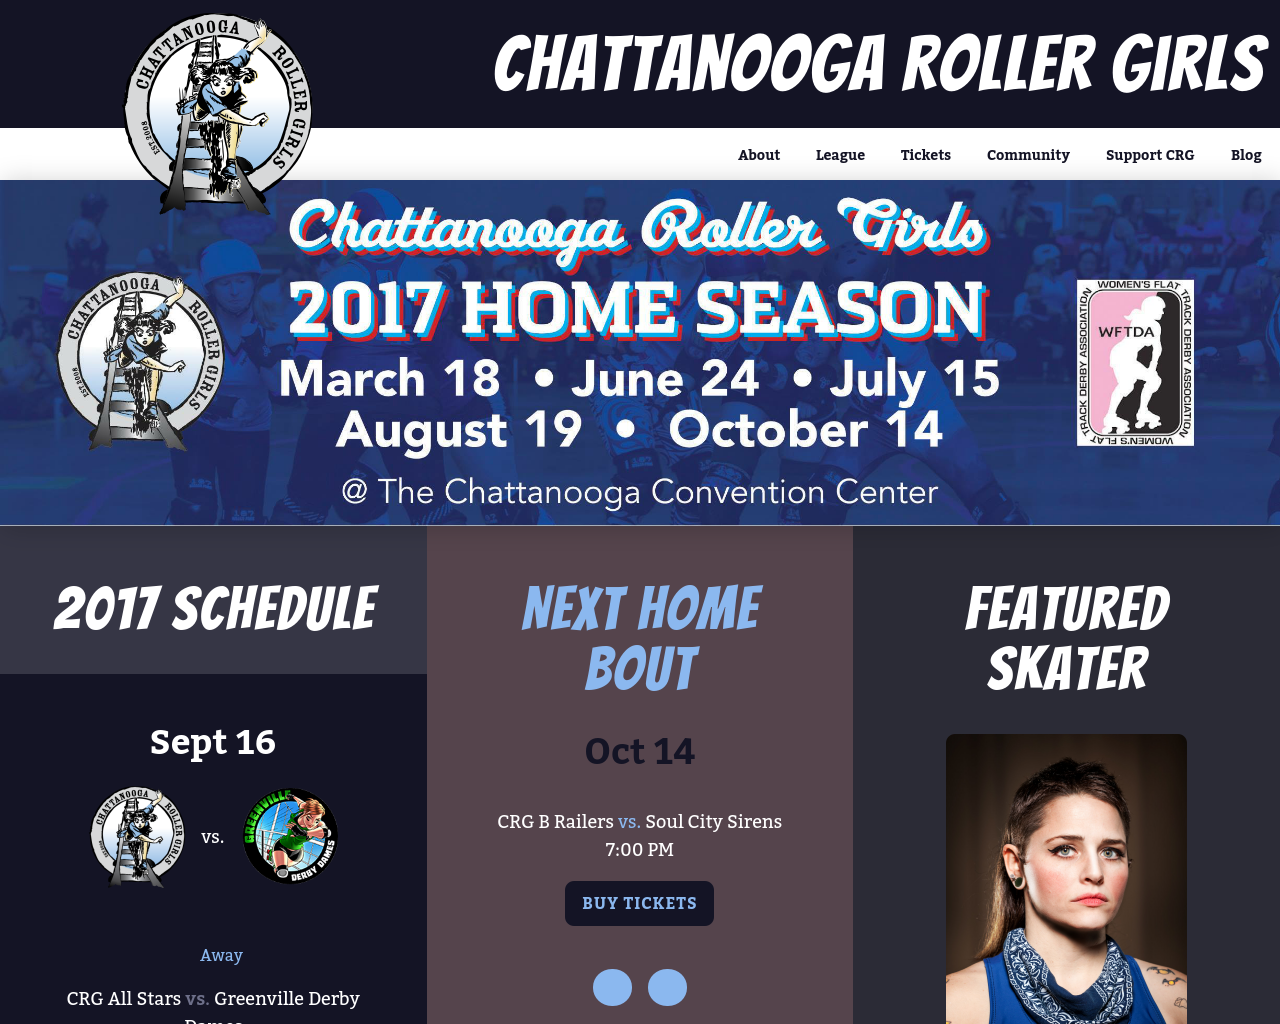 Chattanooga-Roller-Girls-Advertising-Reviews-Pricing